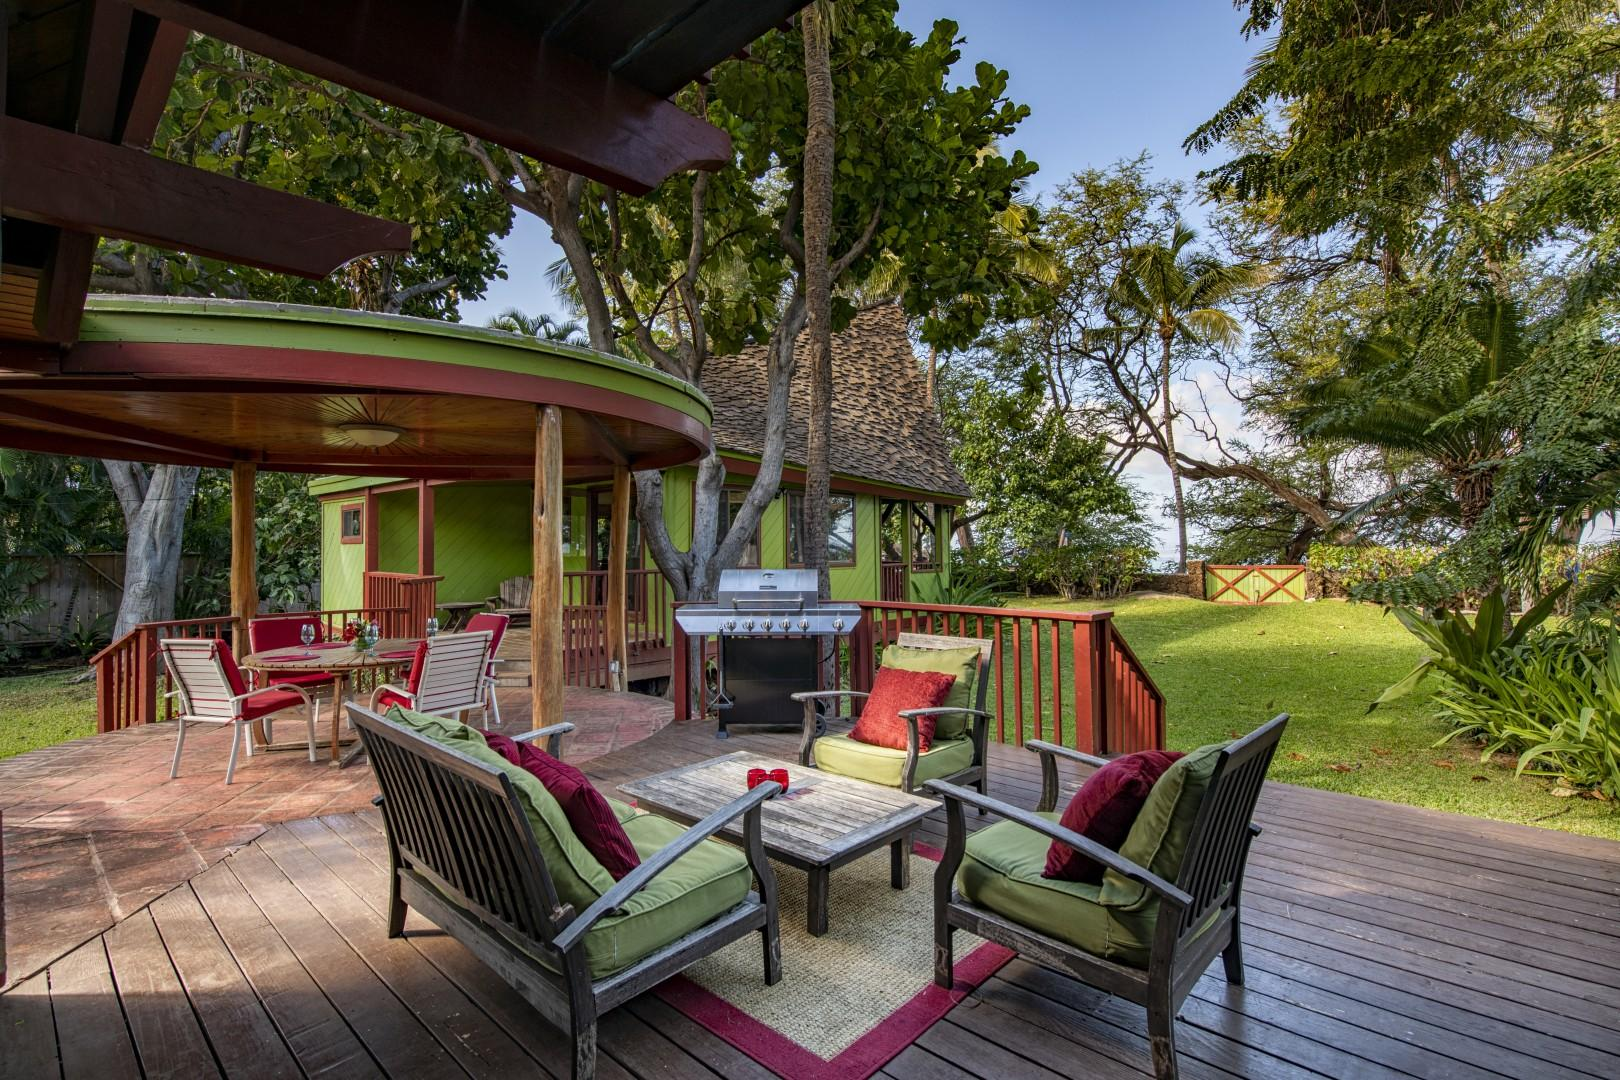 6. Outdoor Lanai overlooking gardens is the perfect place to relax